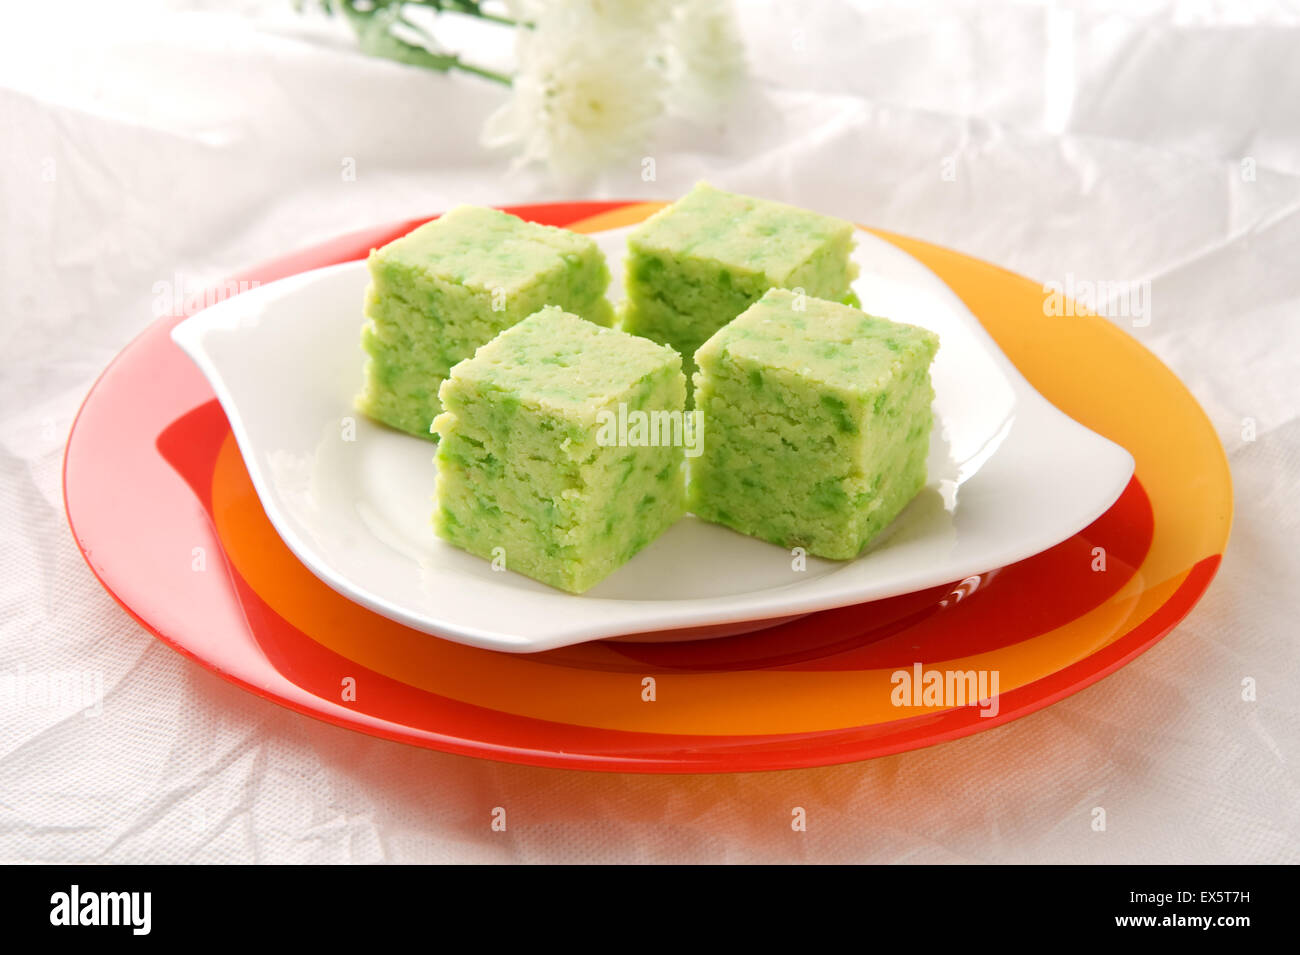 Gourd Halva (Delicious dessert made by condensed milk and gourd vegetable) - Stock Image